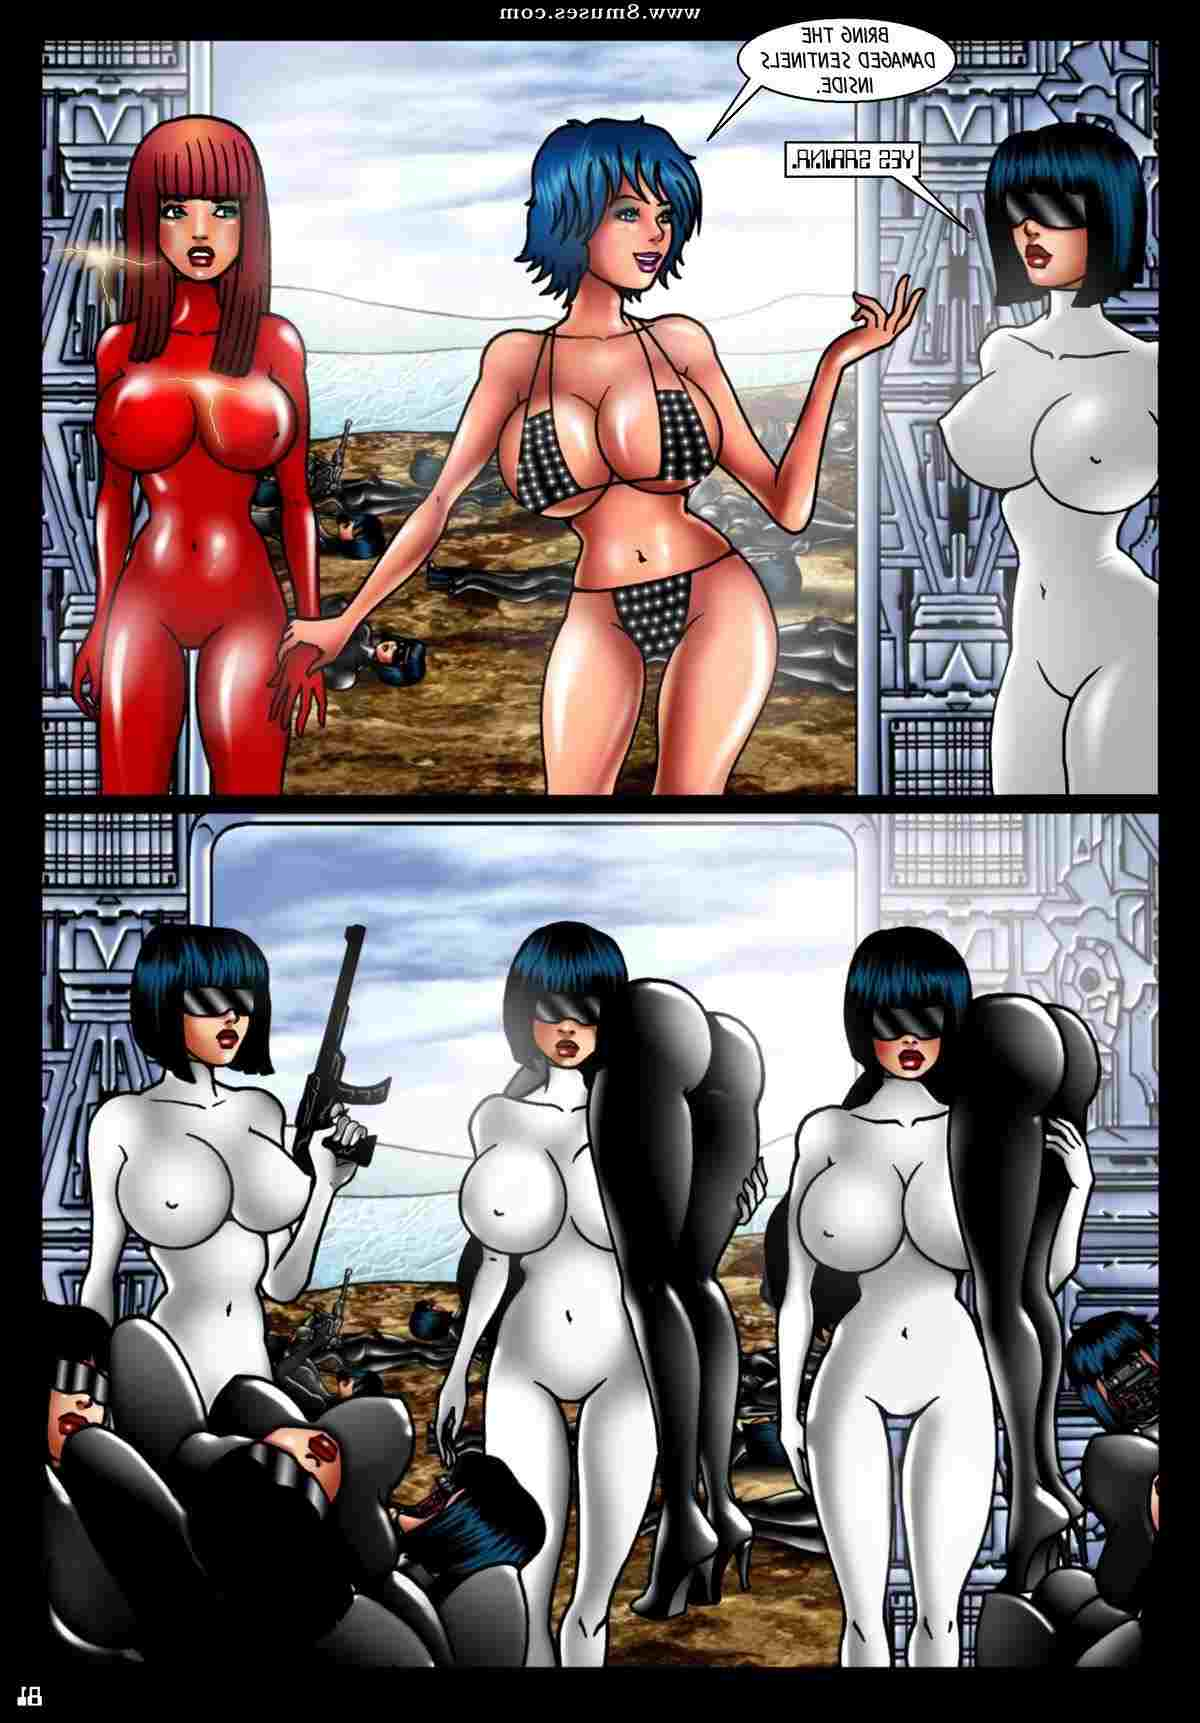 Various-Authors/AB-Lust/Shemale-Android-Sex-Sirens-Renegades Shemale_Android_Sex_Sirens_-_Renegades__8muses_-_Sex_and_Porn_Comics_82.jpg